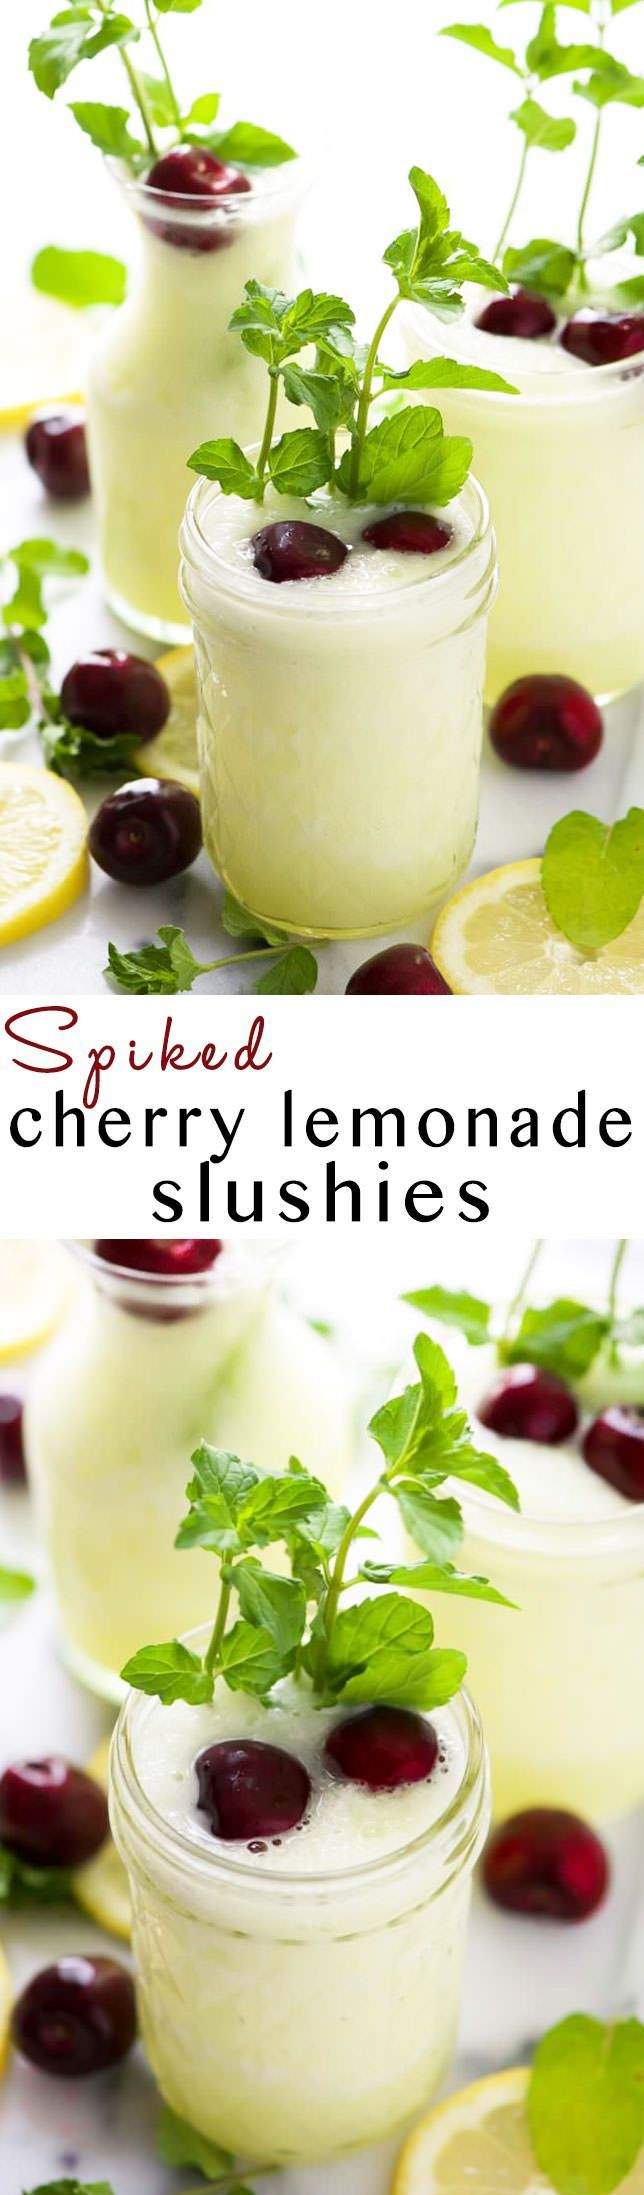 A skinny and refreshing summer treat made with lemonade and cherry vodka. A grown up slushie that will be perfect for hot summer days!